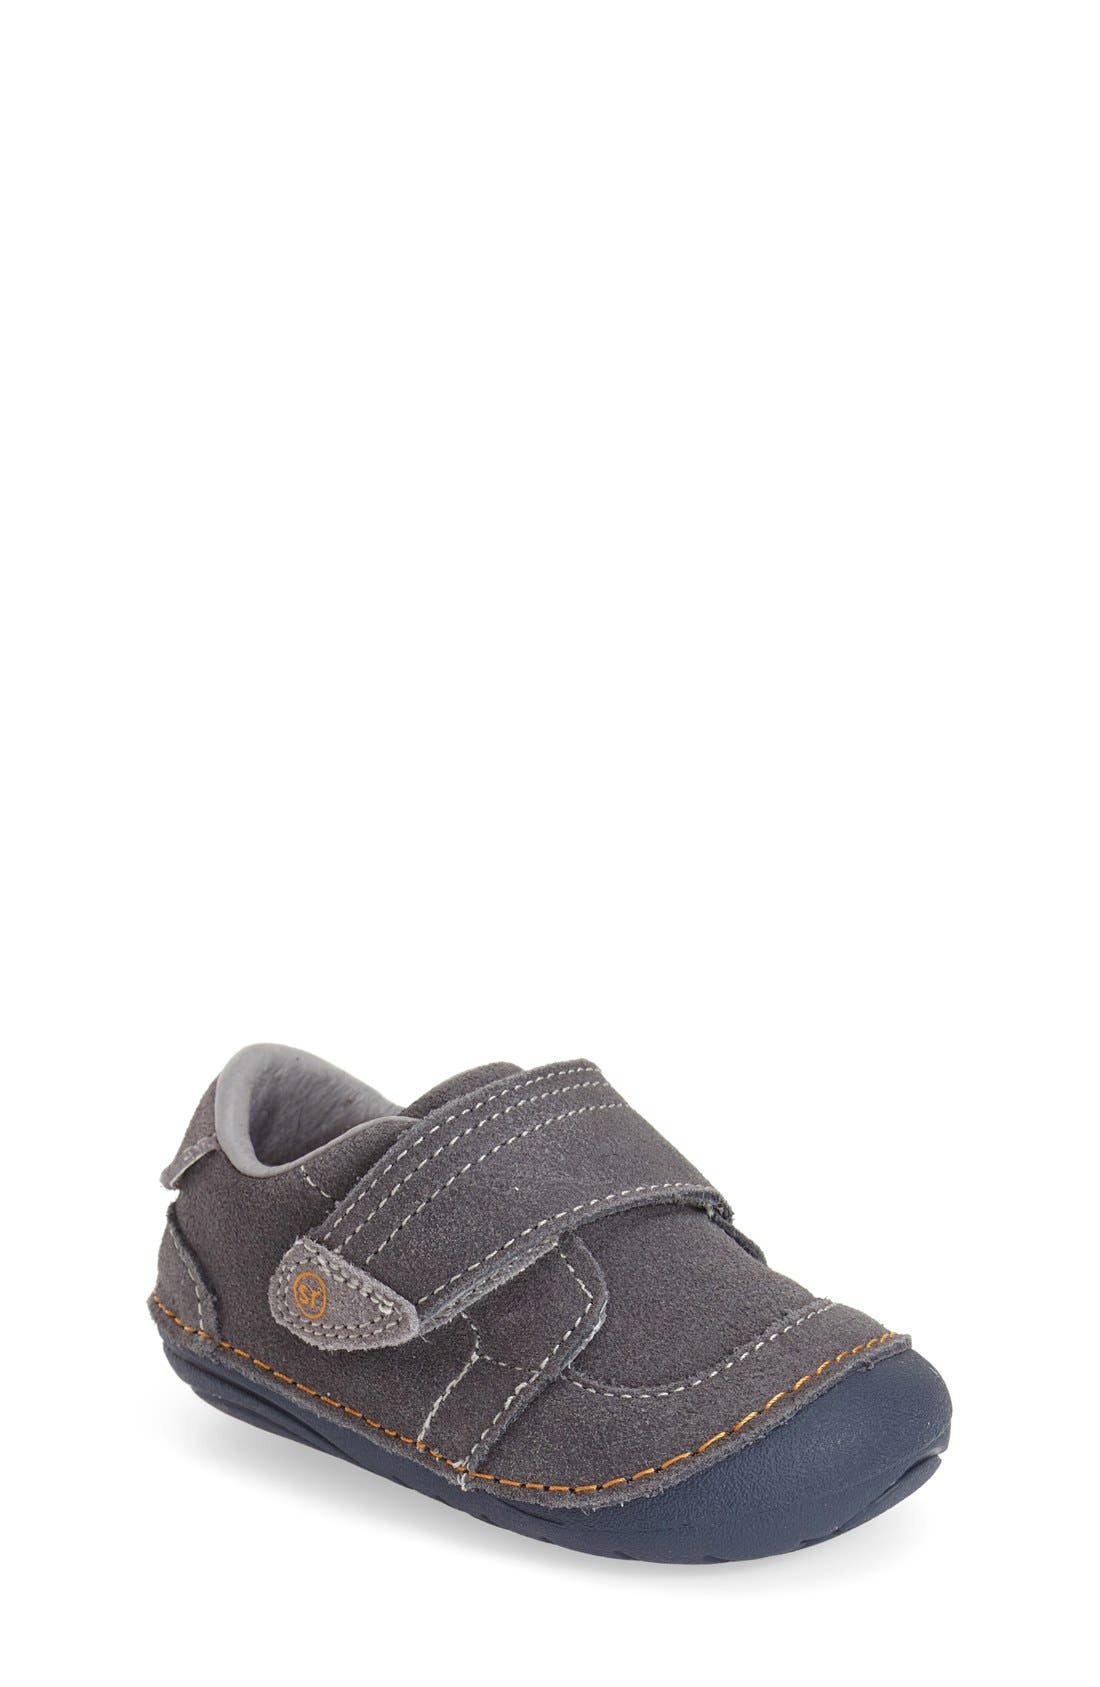 Stride Rite Soft Motion Kellen Sneaker (Baby & Walker)